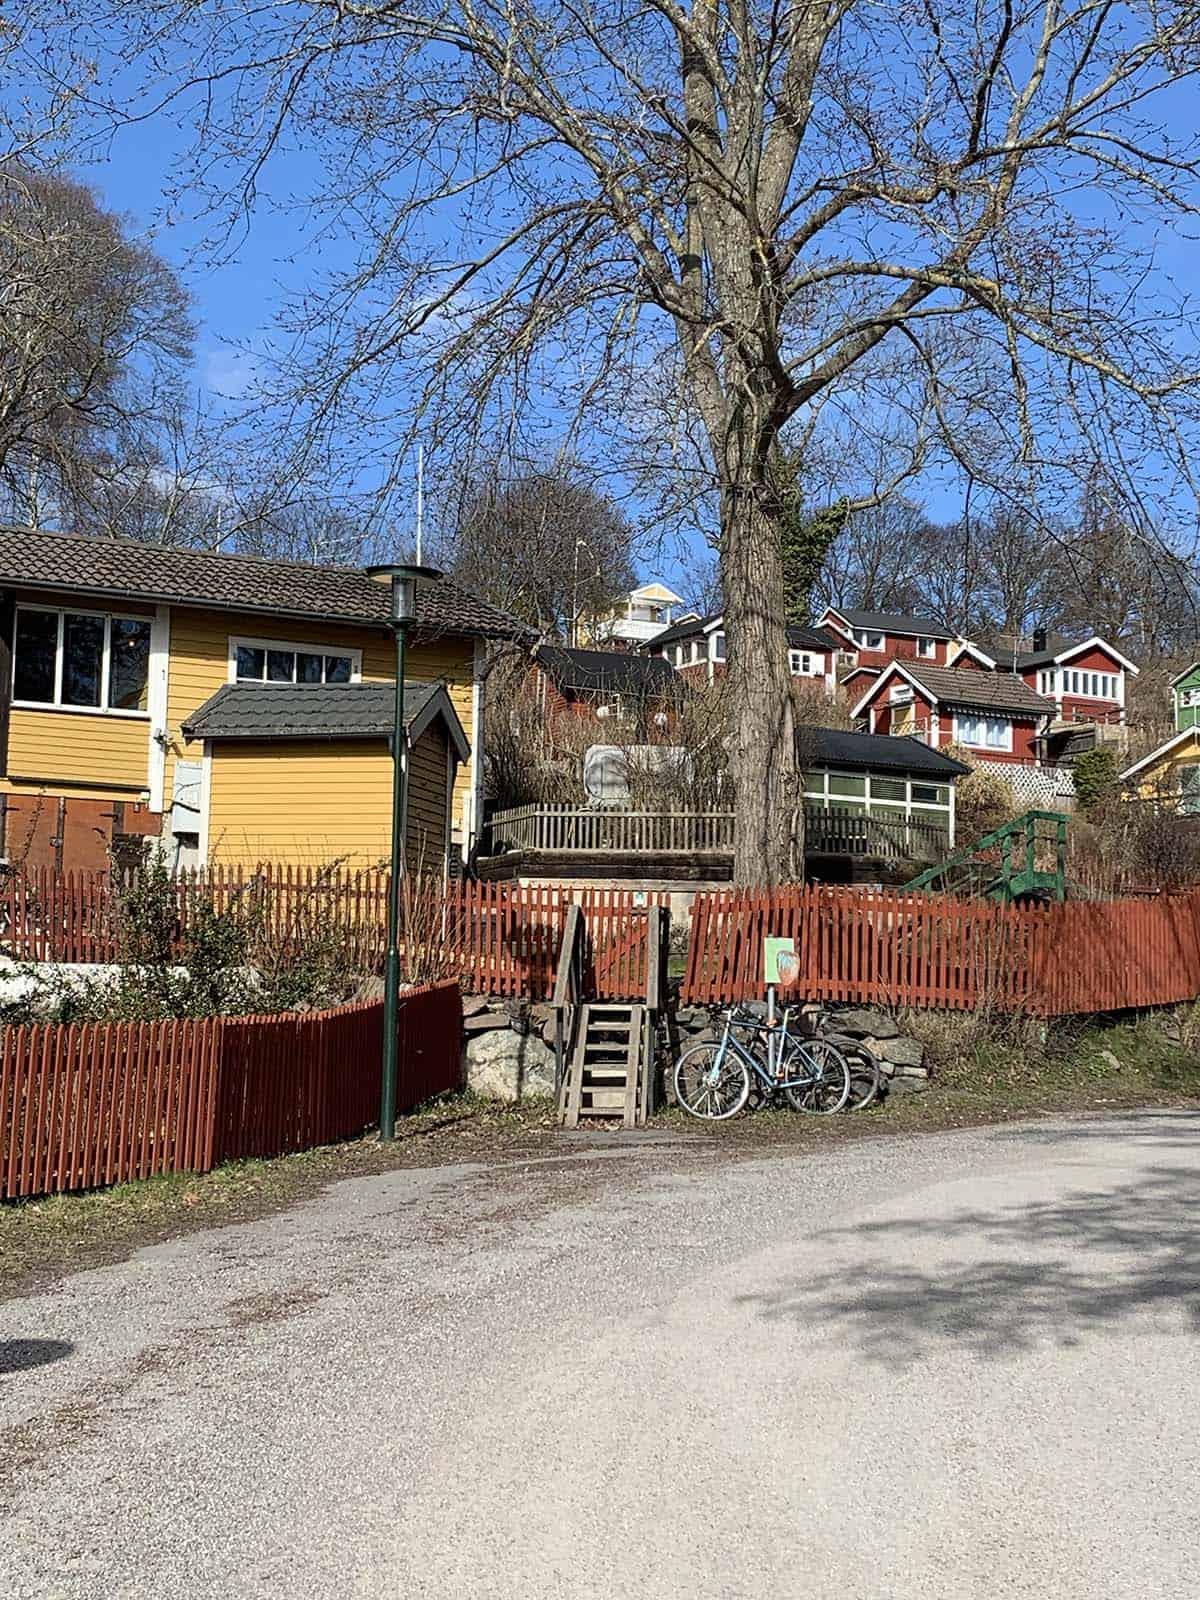 allotment gardens in Stockholm